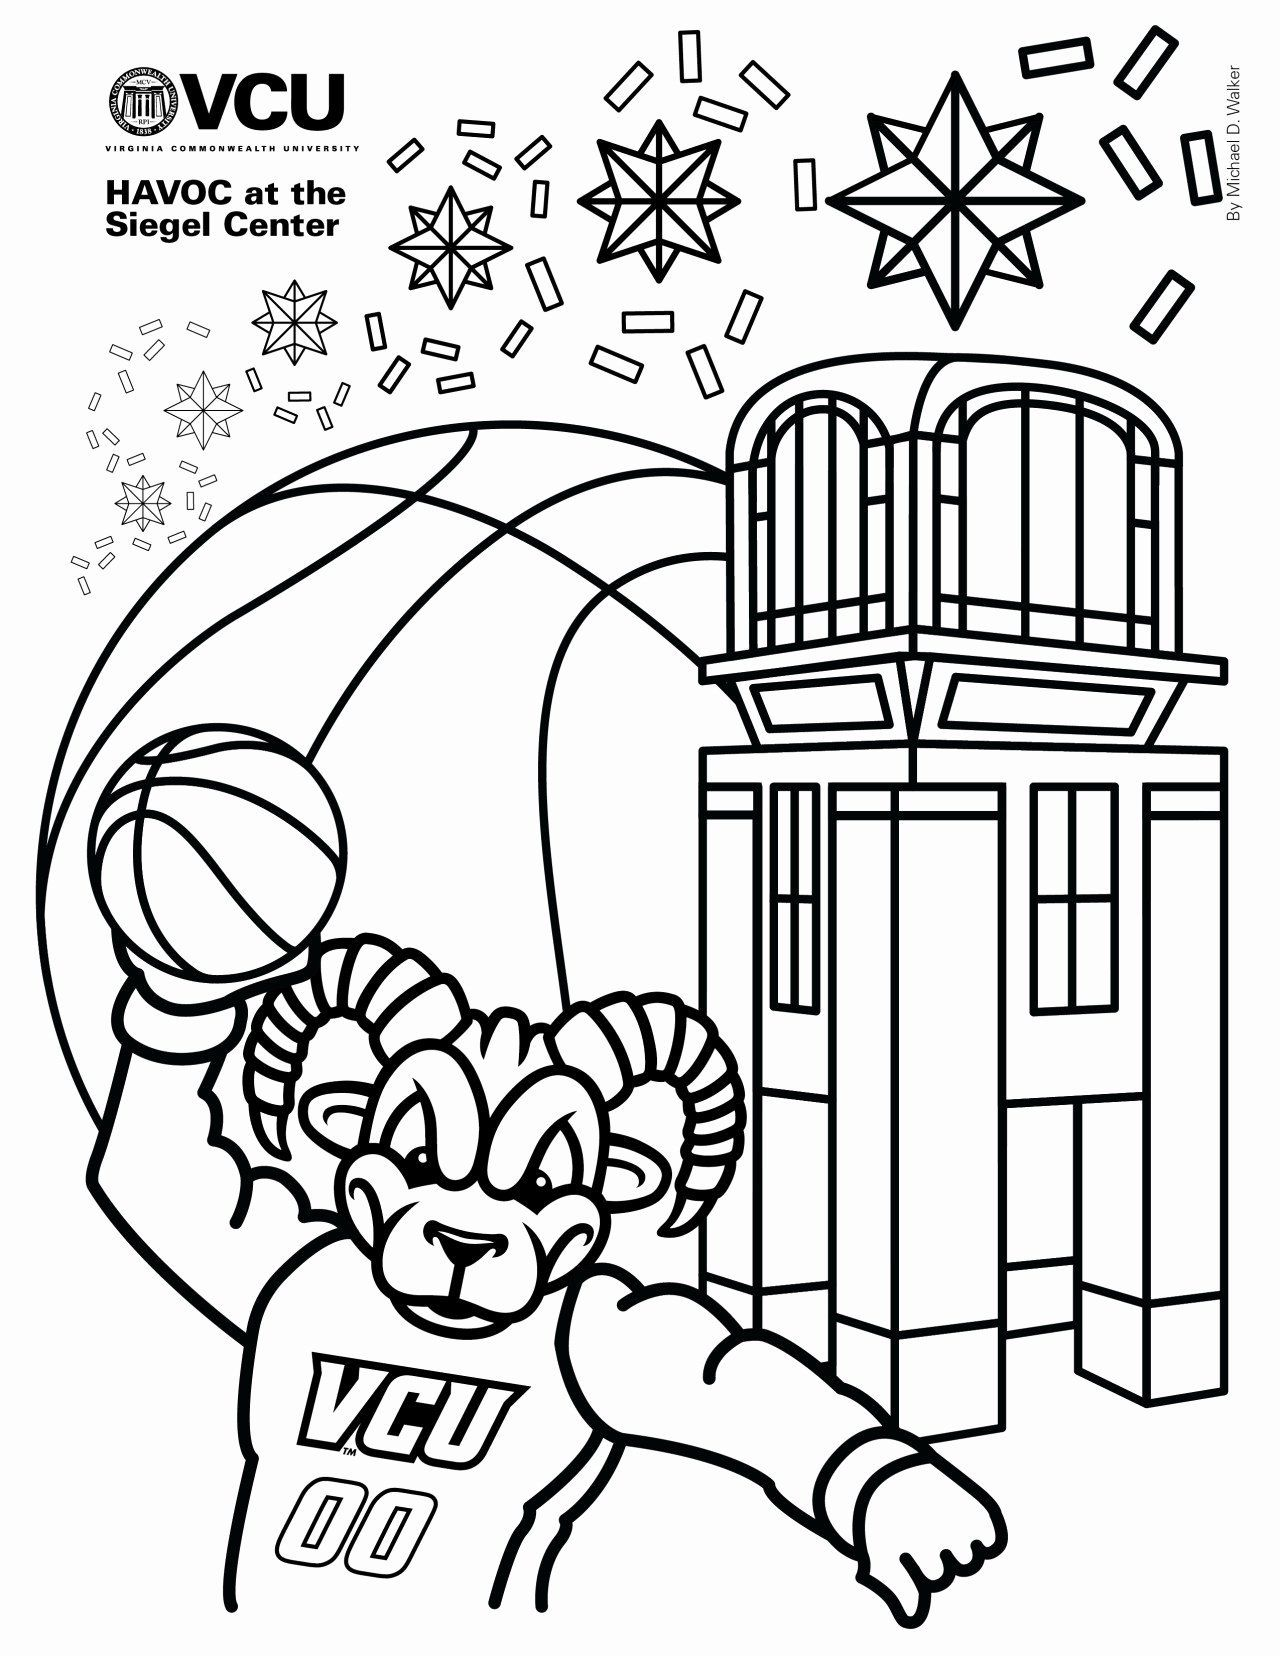 Picture Of Megamind Coloring Pages Coloring Pages Bible Coloring Pages Coloring Pages For Kids